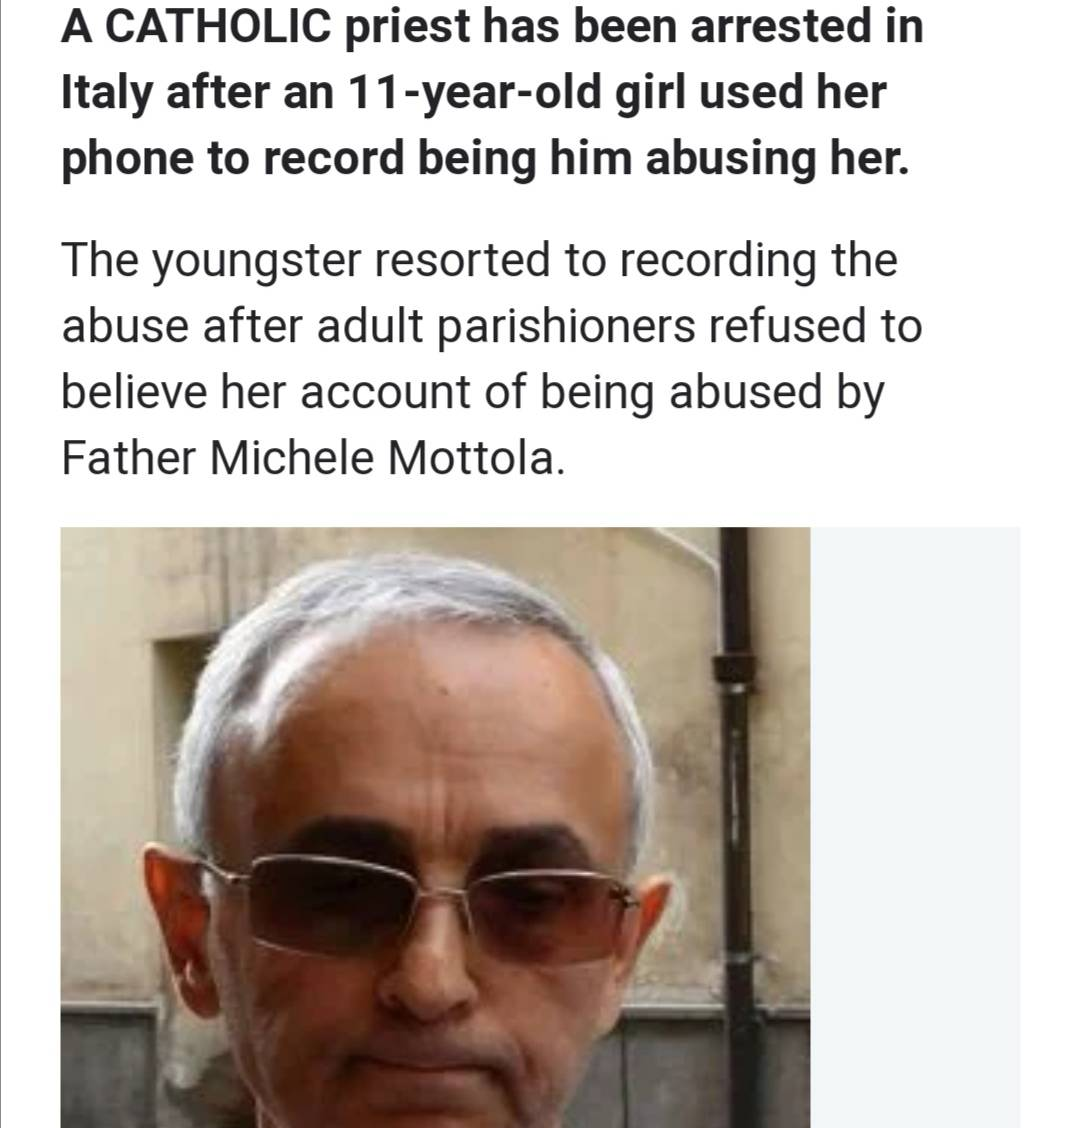 A CATHOLIC priest has been arrested in Italy after an 11-year-old girl used her phone to record being him abusing her.  The youngster resorted to recording the abuse after adult parishioners refused to believe her account of being abused by the man.   #pervert #religion